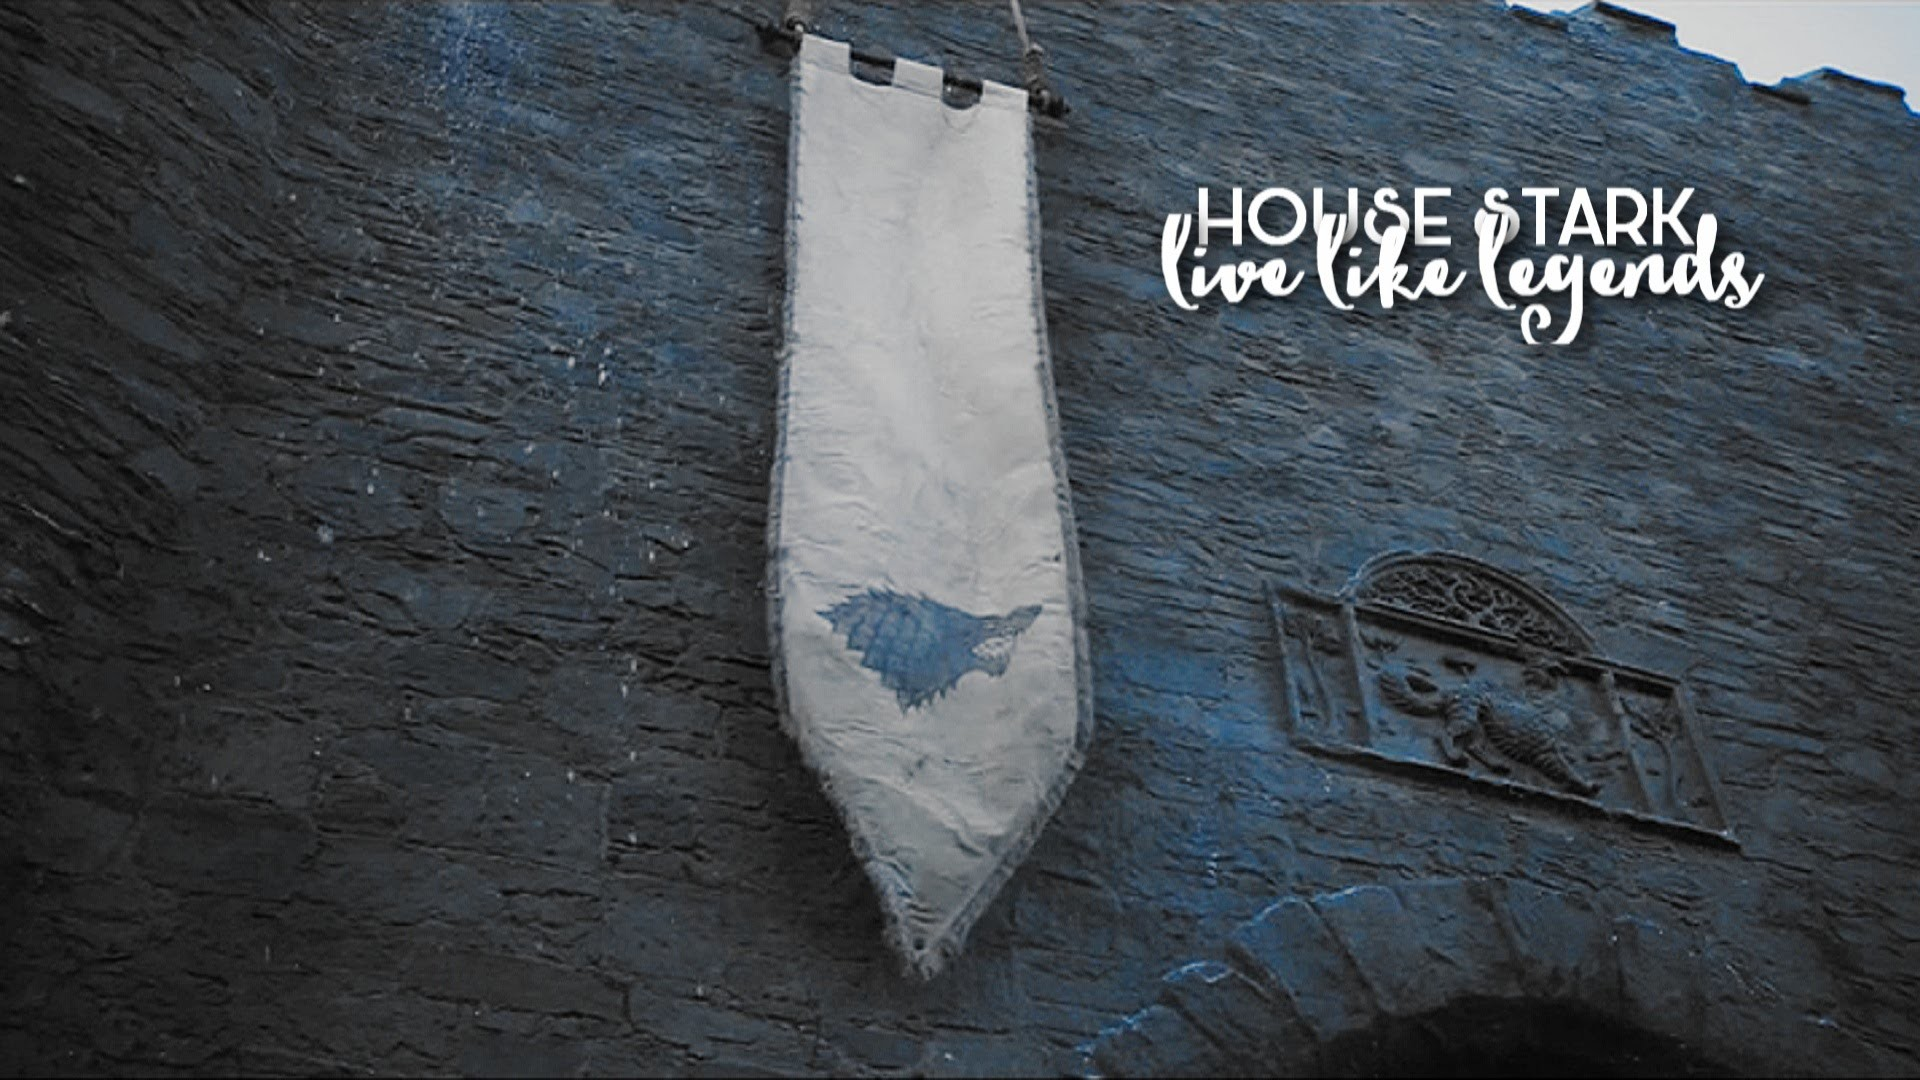 1920x1080 house stark || live like legends